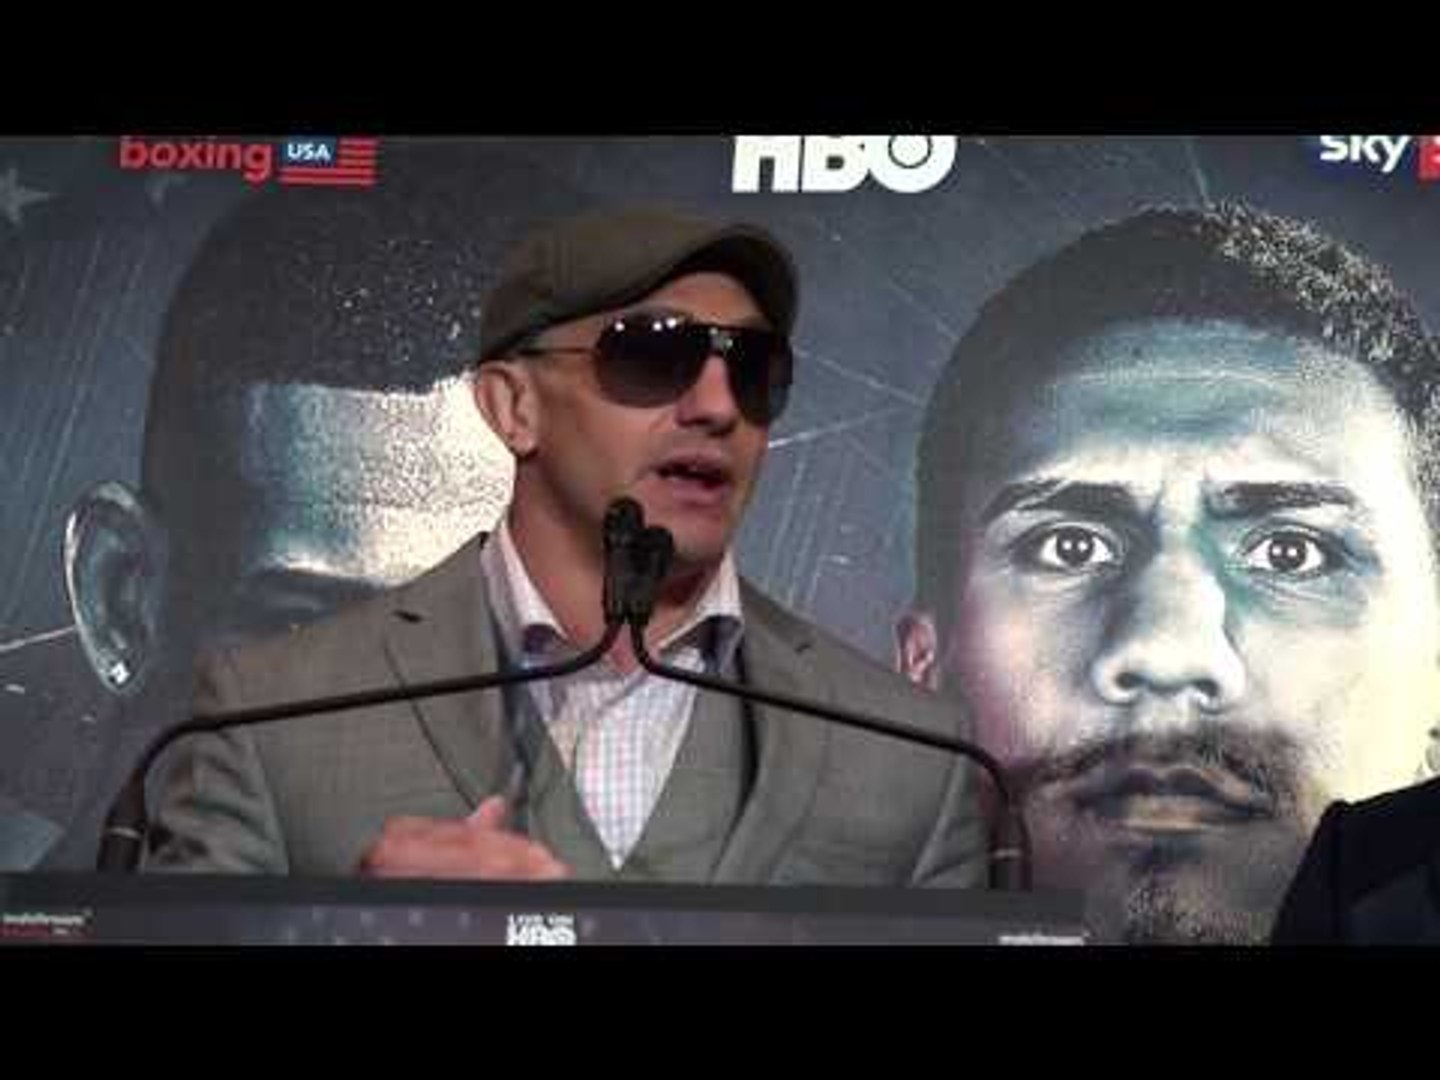 Cletus Seldin vs Roberto Ortiz - FINAL PRESS CONFERENCE